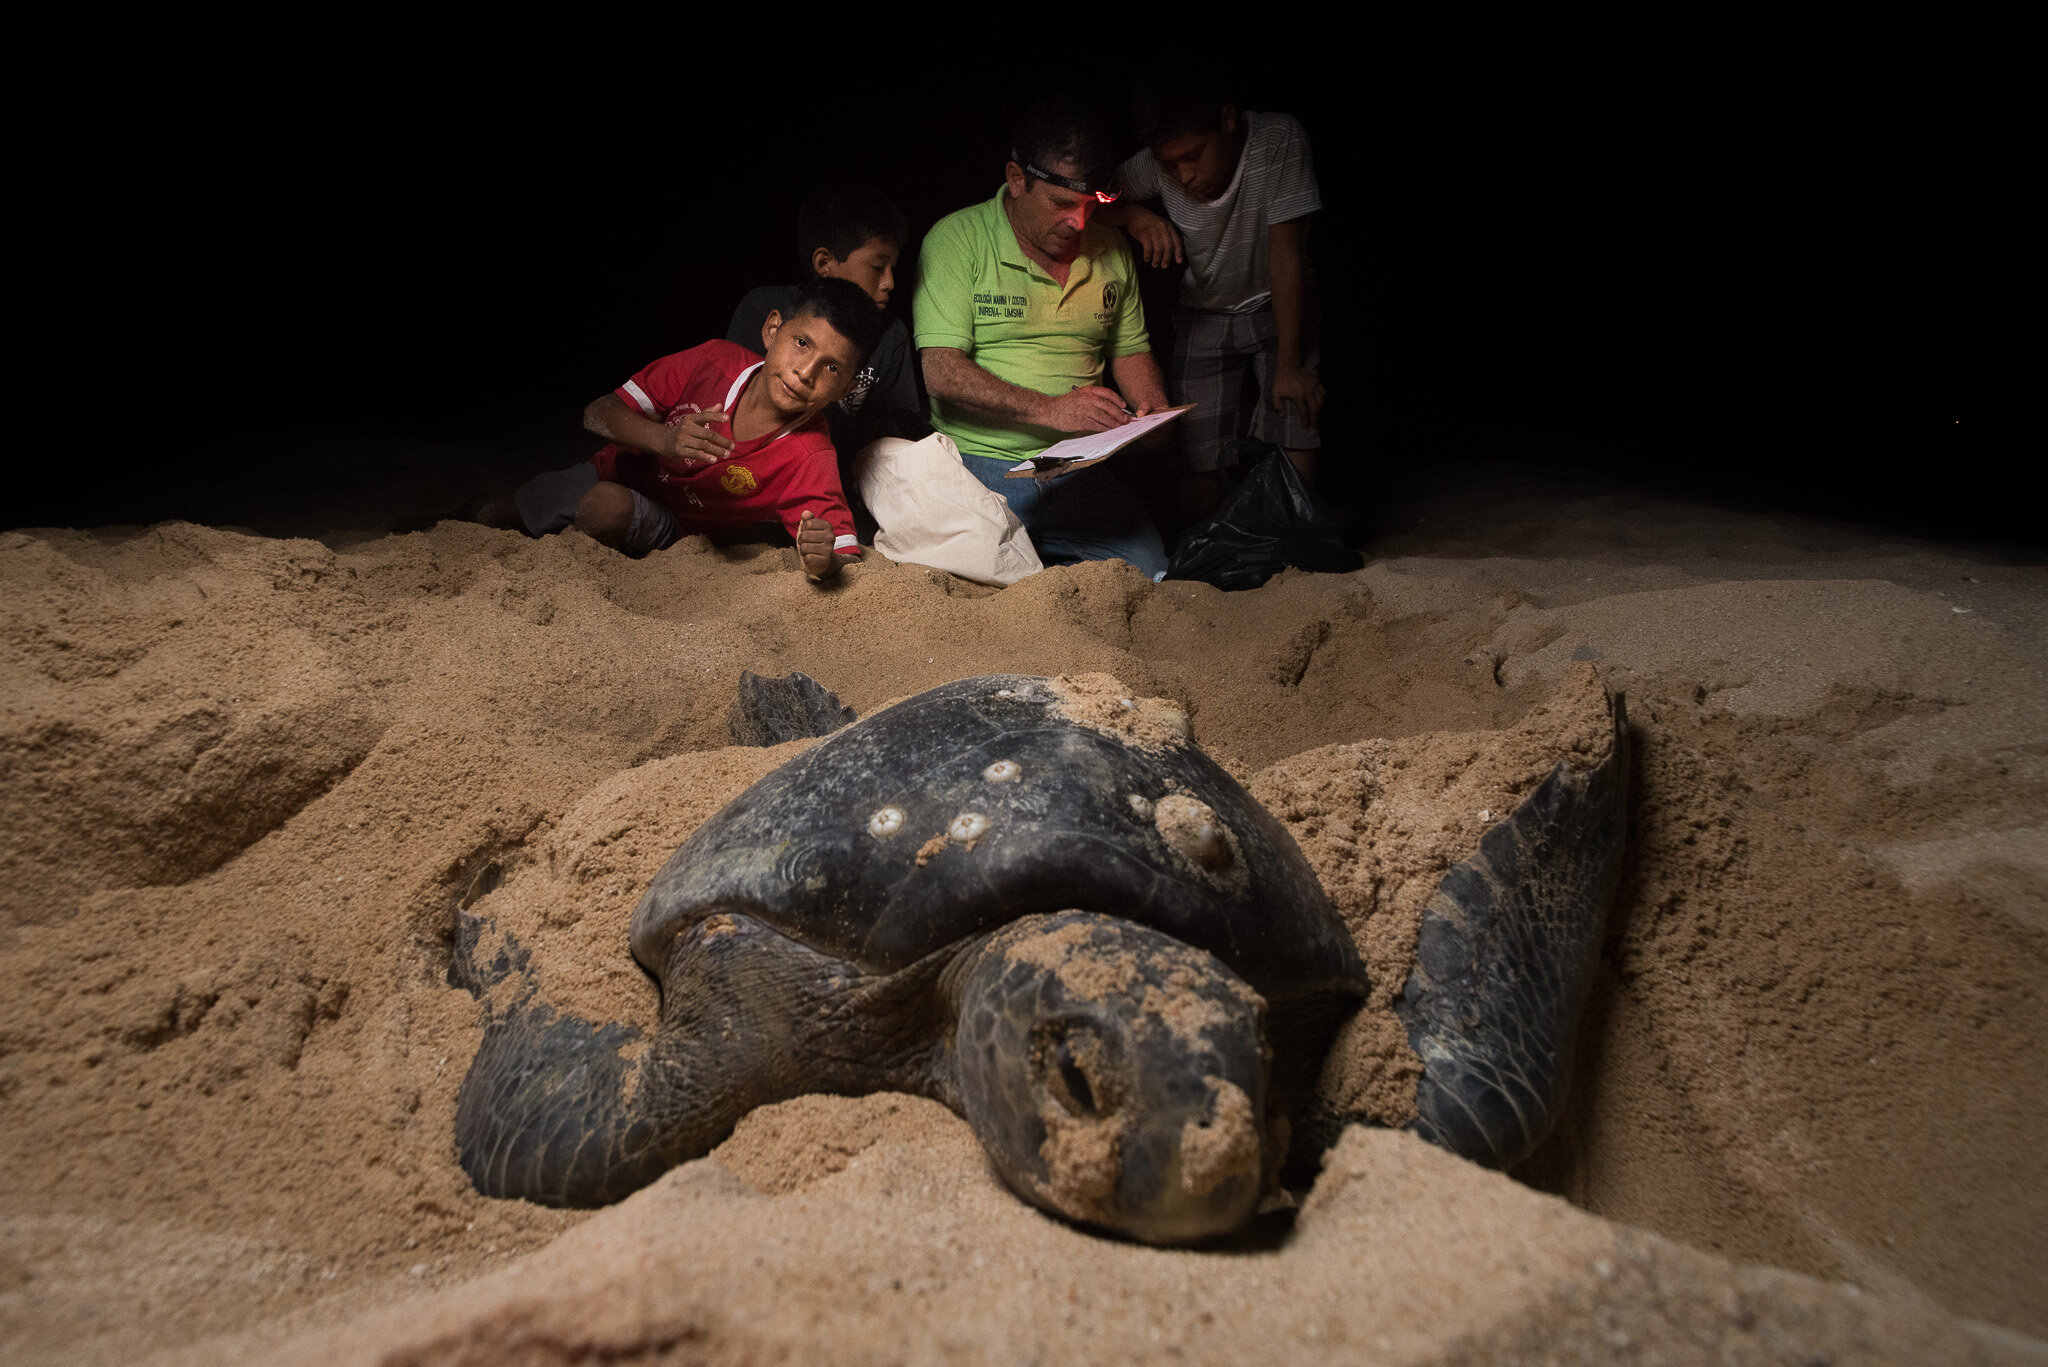 Local kids working with a black turtle